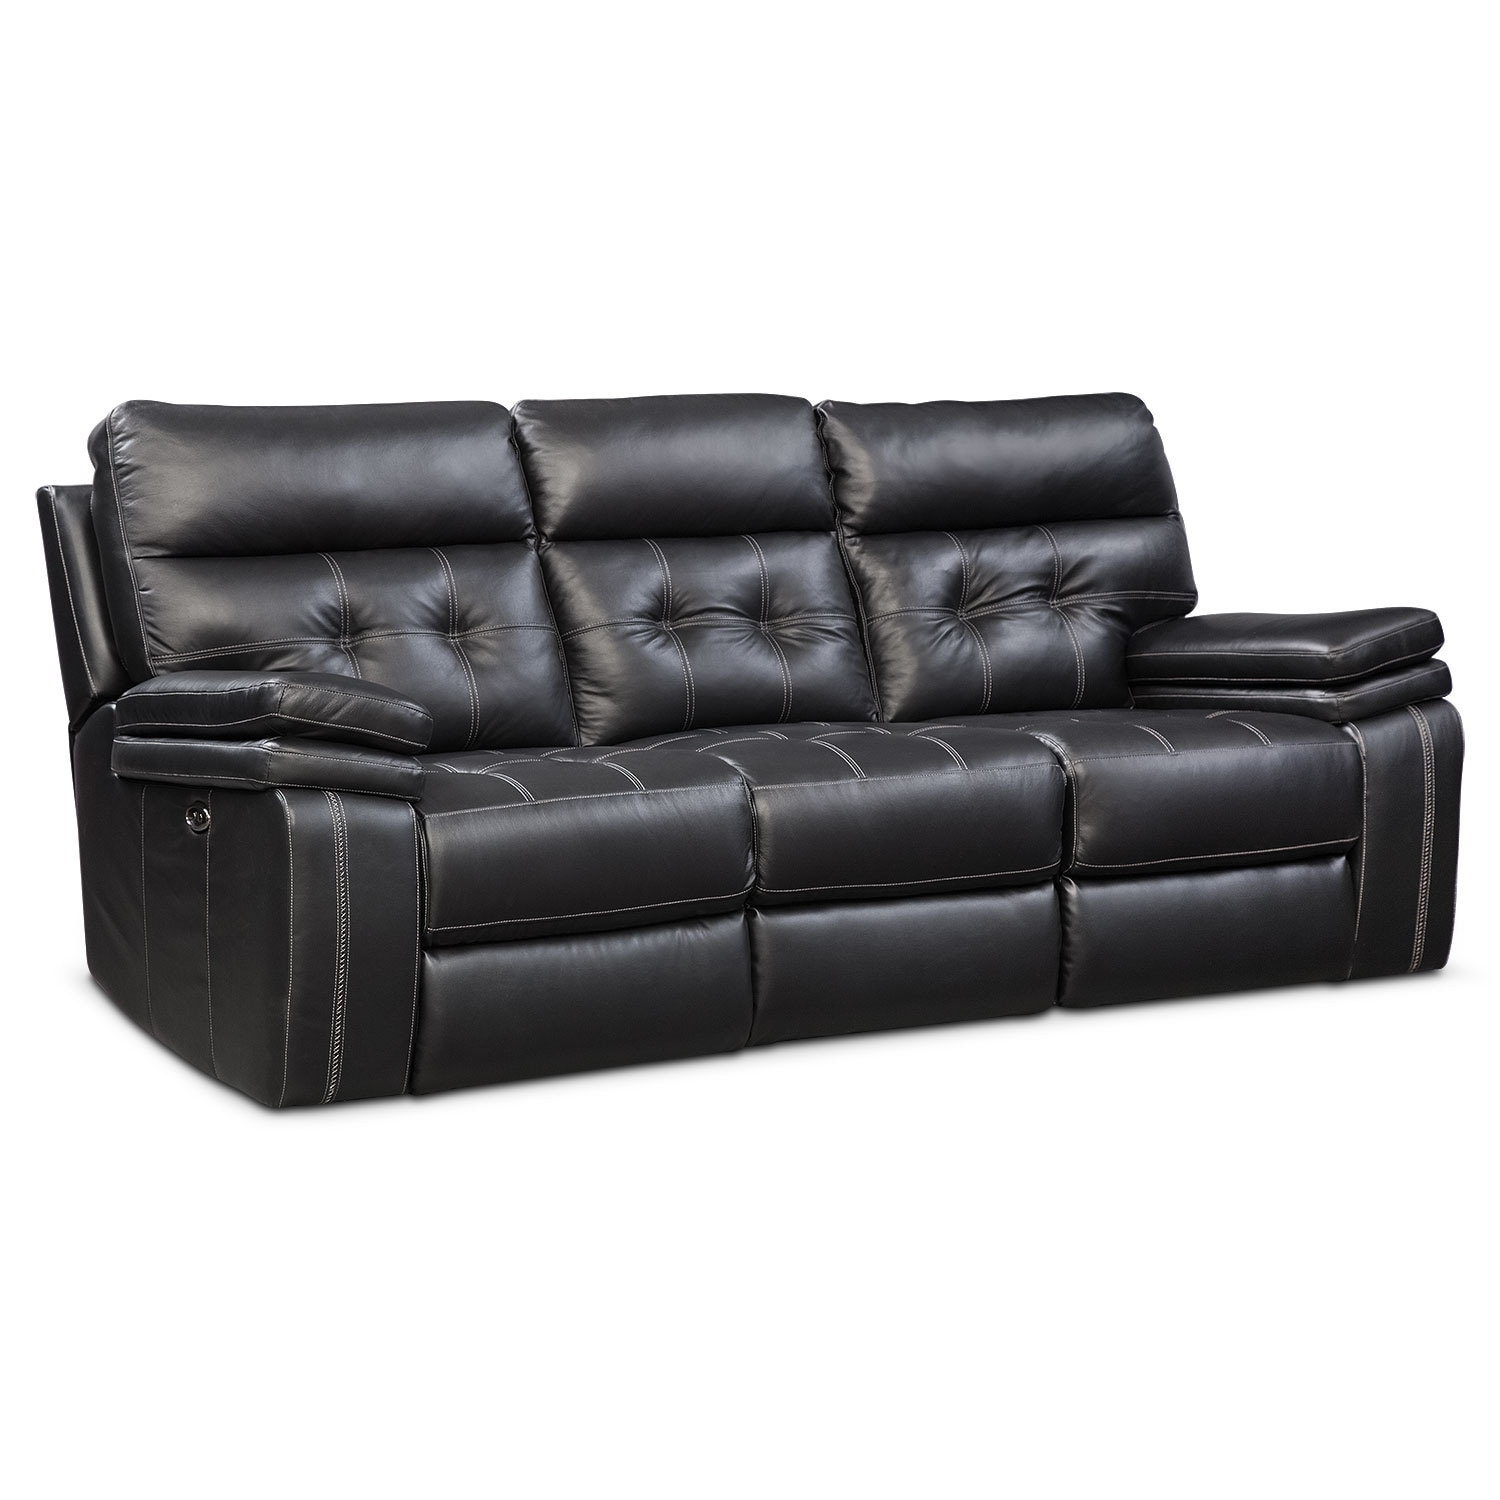 Brisco Power Reclining Sofa Black Value City Furniture